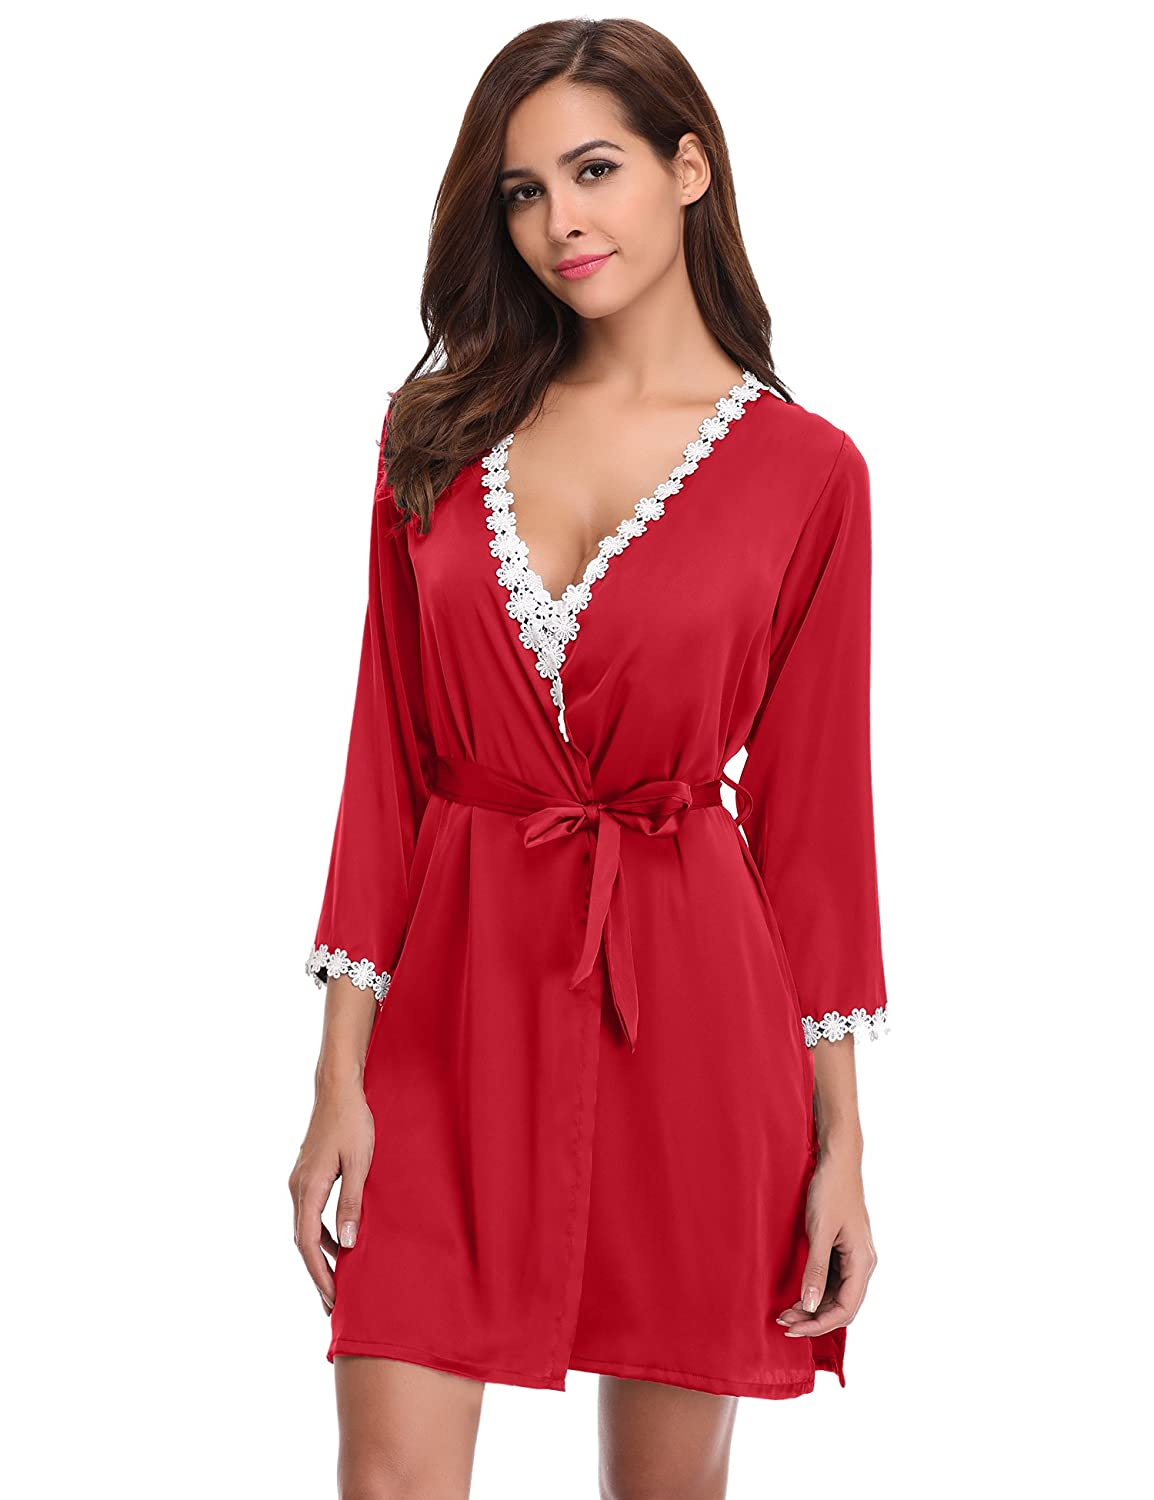 87dc7146c1 Aibrou Womens Satin Sleepwear 2 Piece Set Lace Cami Nightgown and Robe  (Red, Small) at Amazon Women's Clothing store: